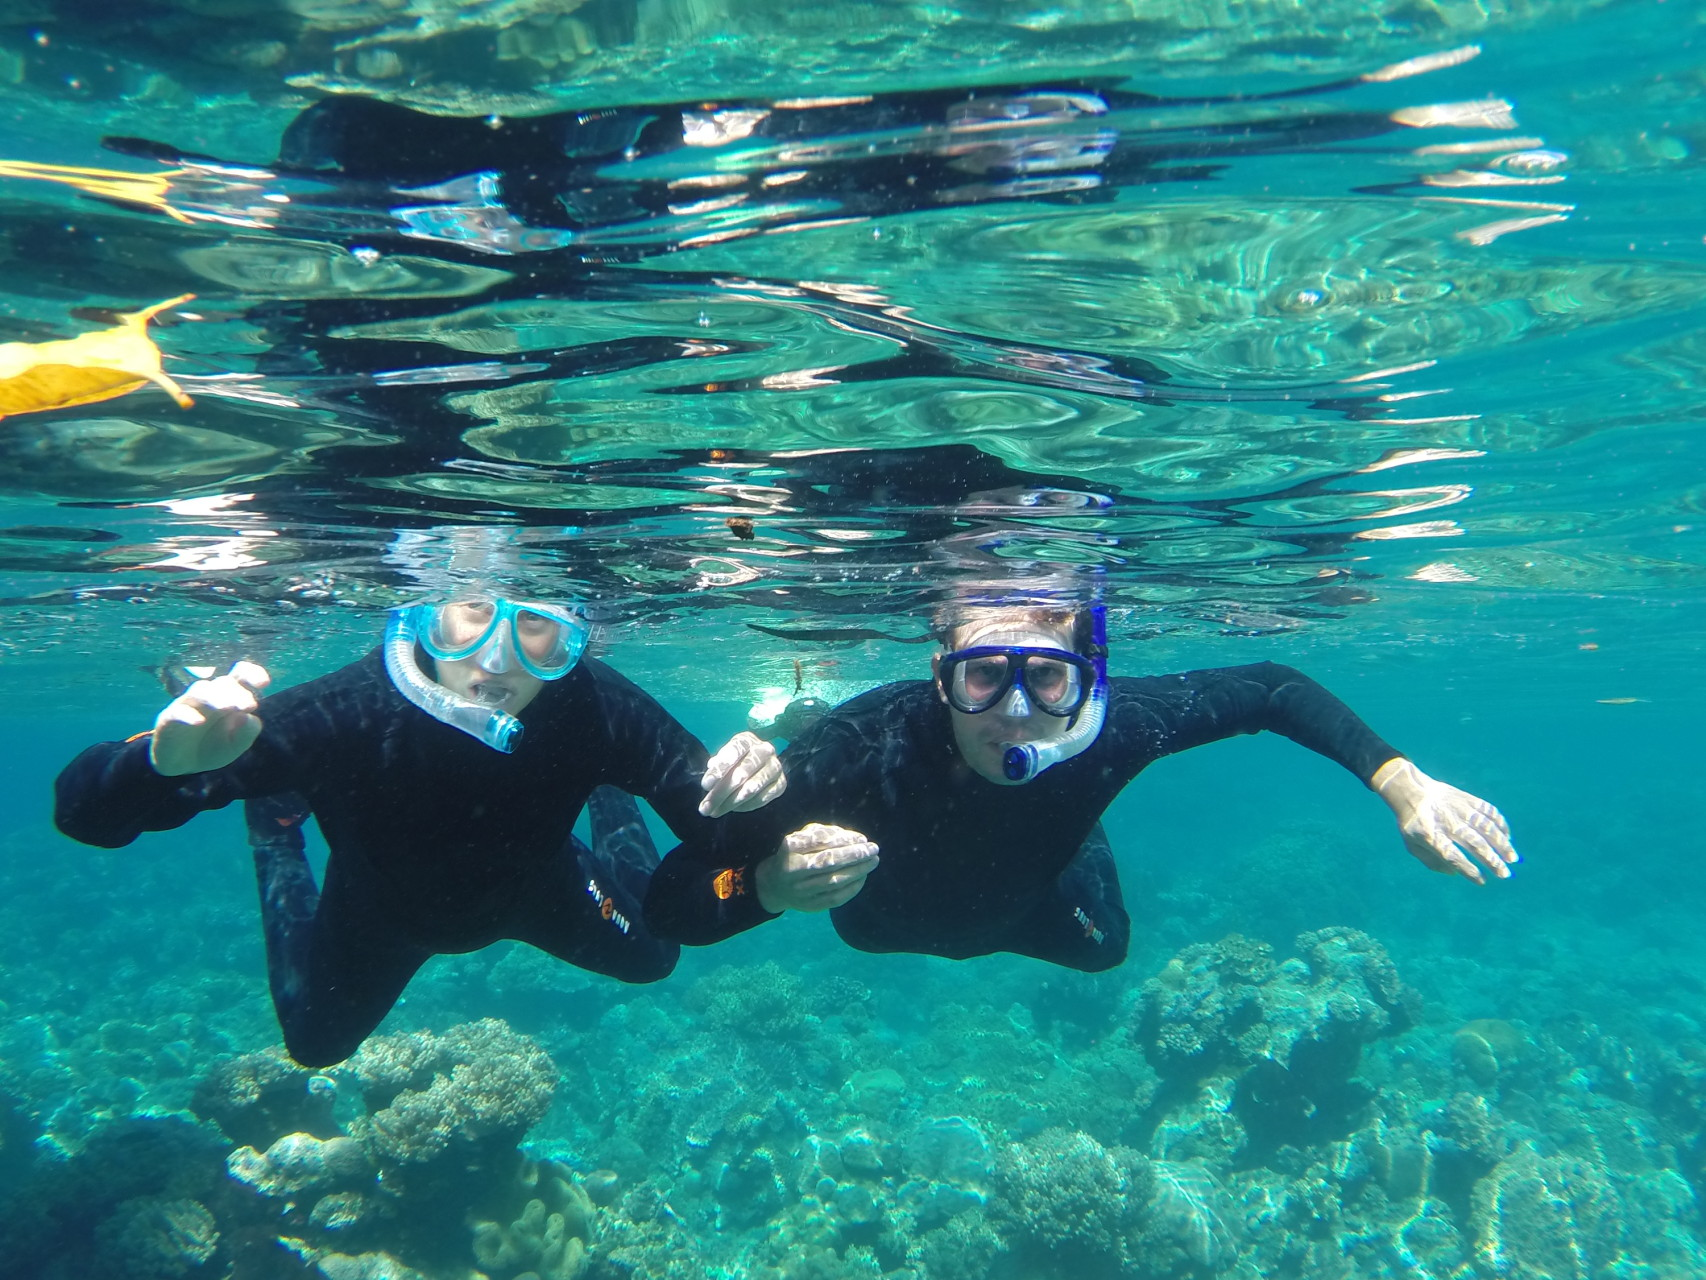 Two very happy snorkelers at Halmahera. Photo courtesy of Rients Faber.